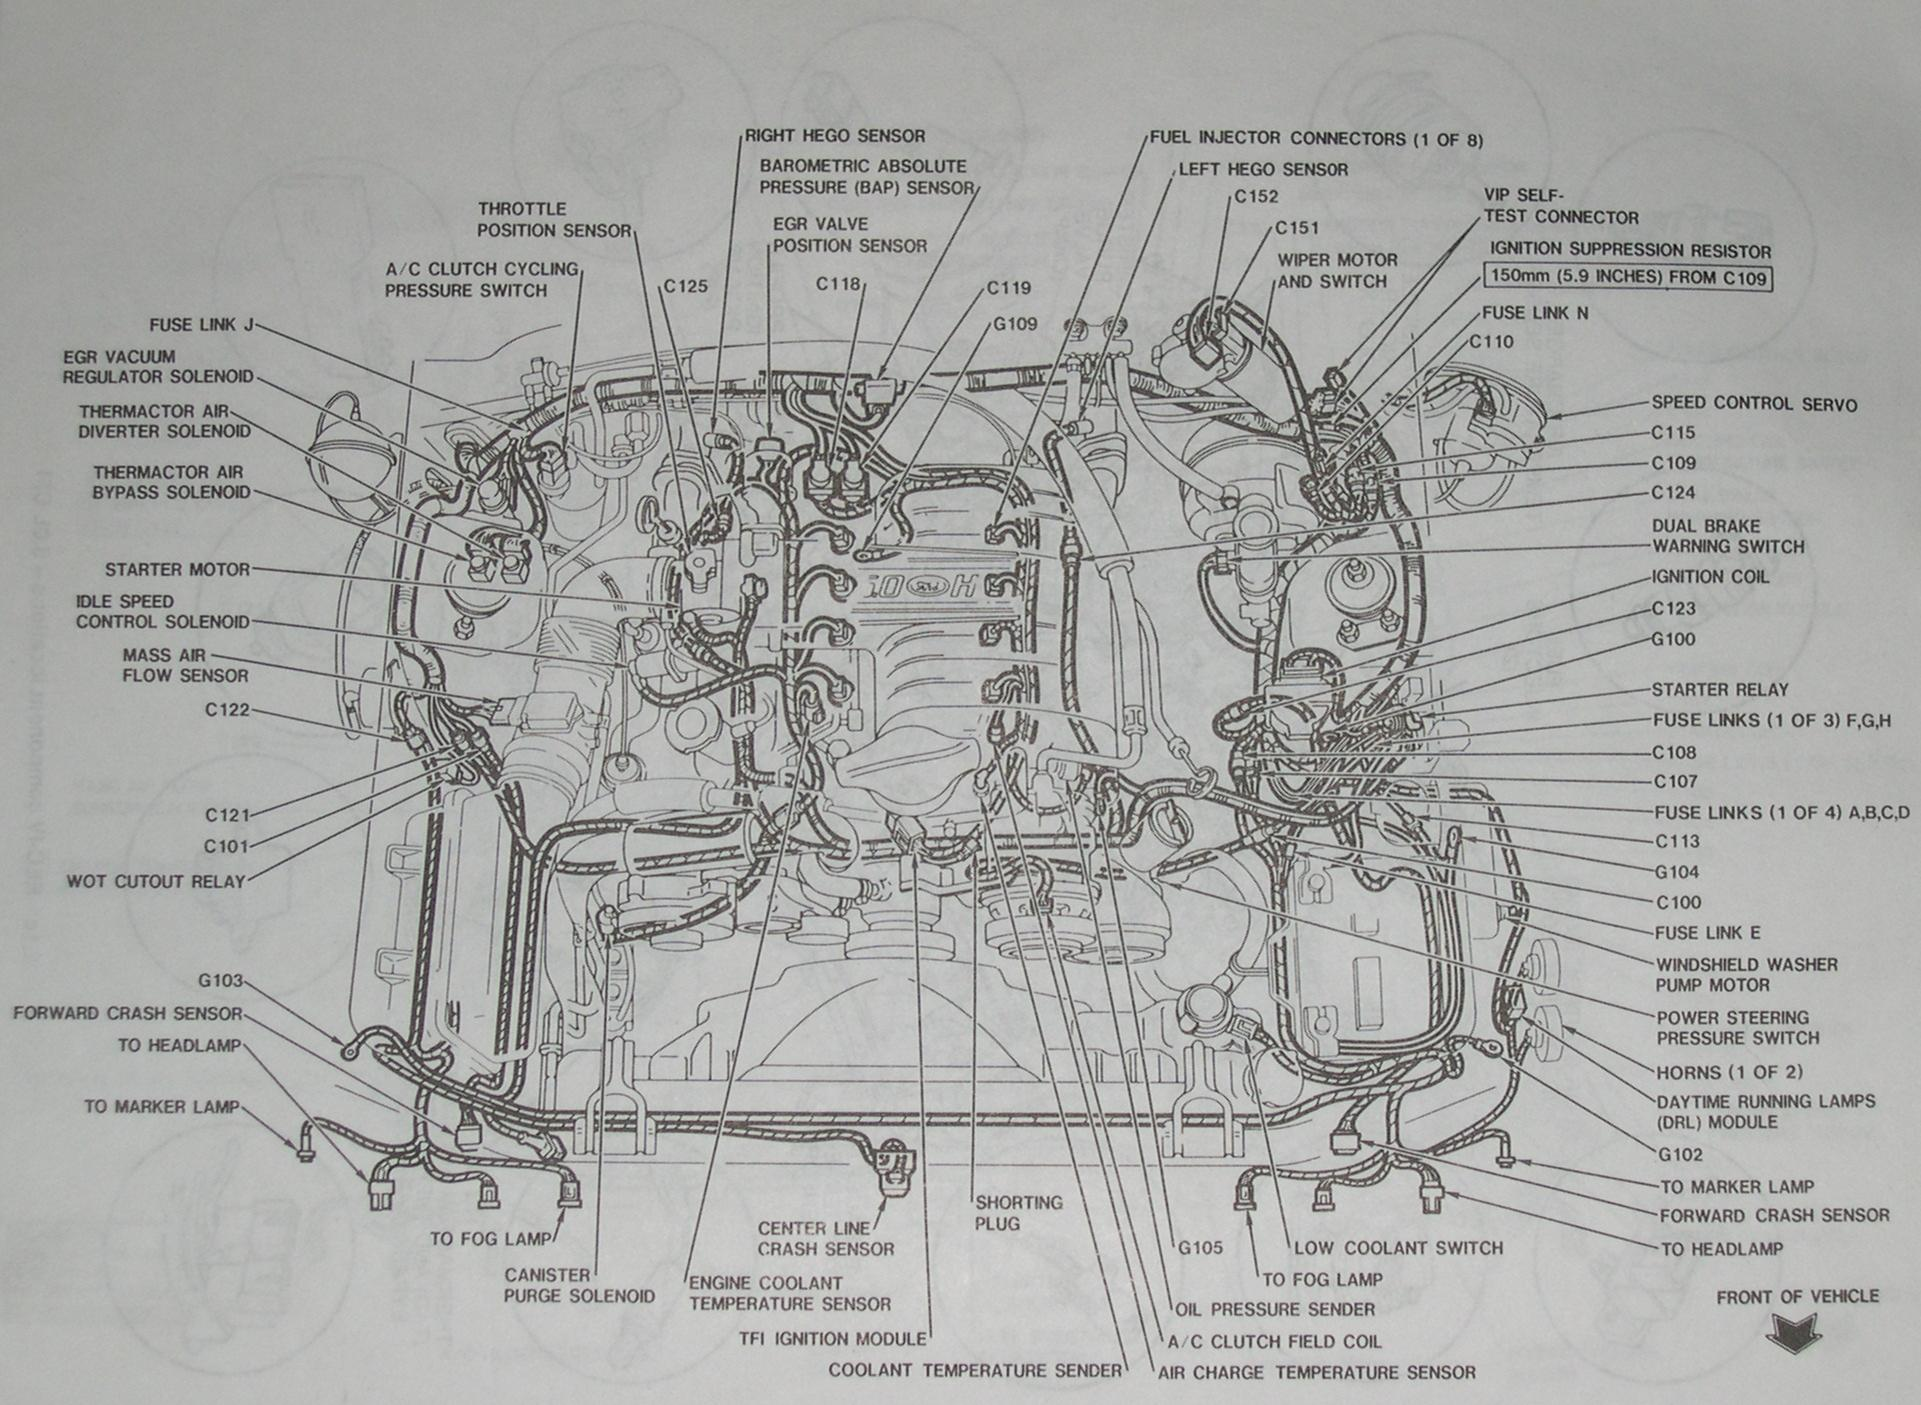 2002 3 8 mustang engine diagram wiring diagrams schematics rh o d l co Mustang 3.8 V6 Engine 2002 mustang v6 engine diagram